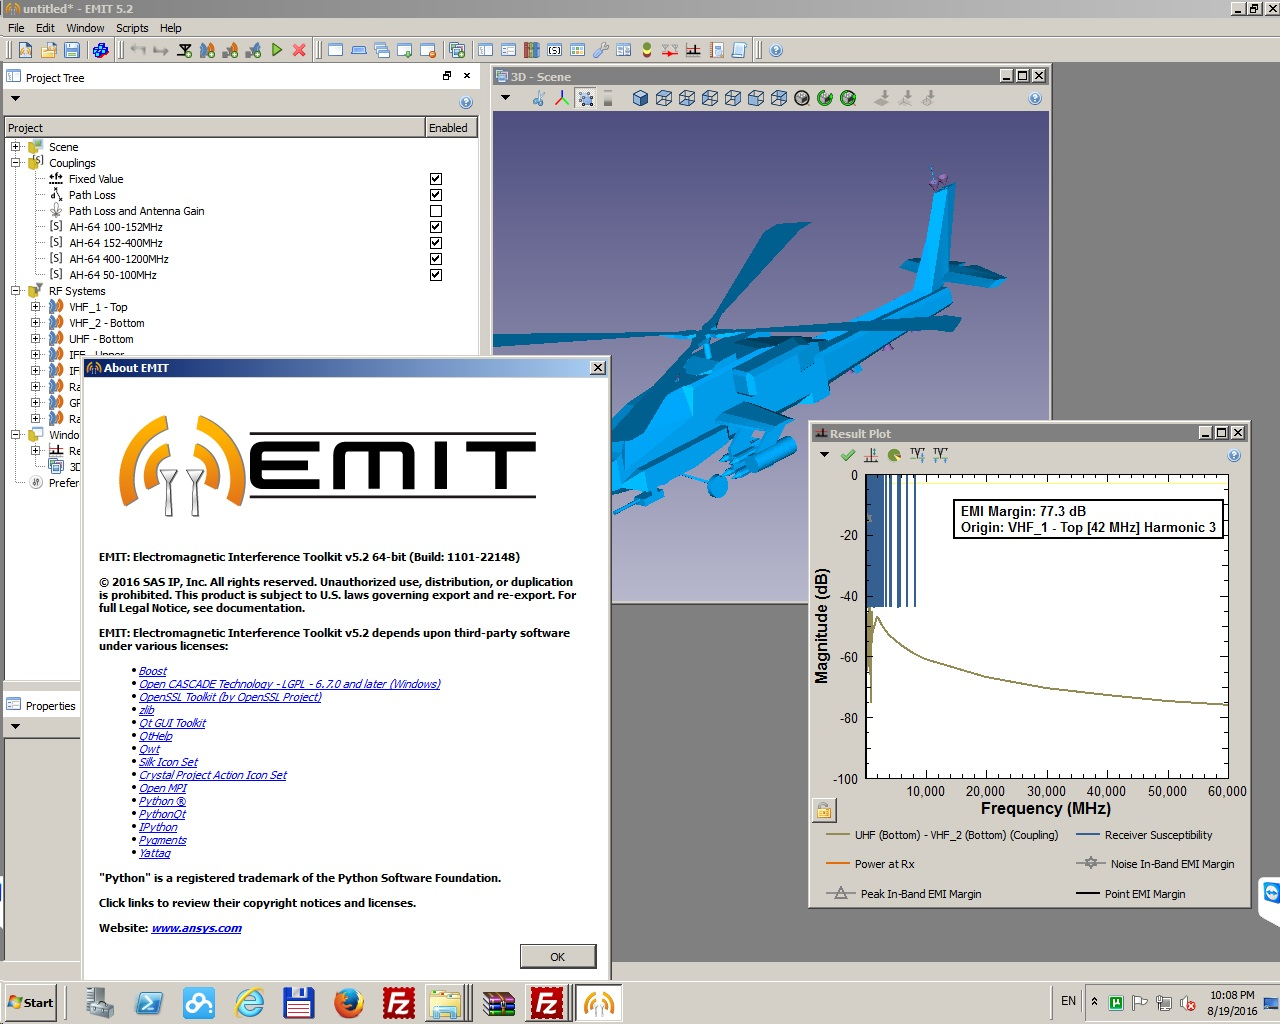 Working with Emit 5.2 ANSYS Electromagnetics Suite 17.2 Win64